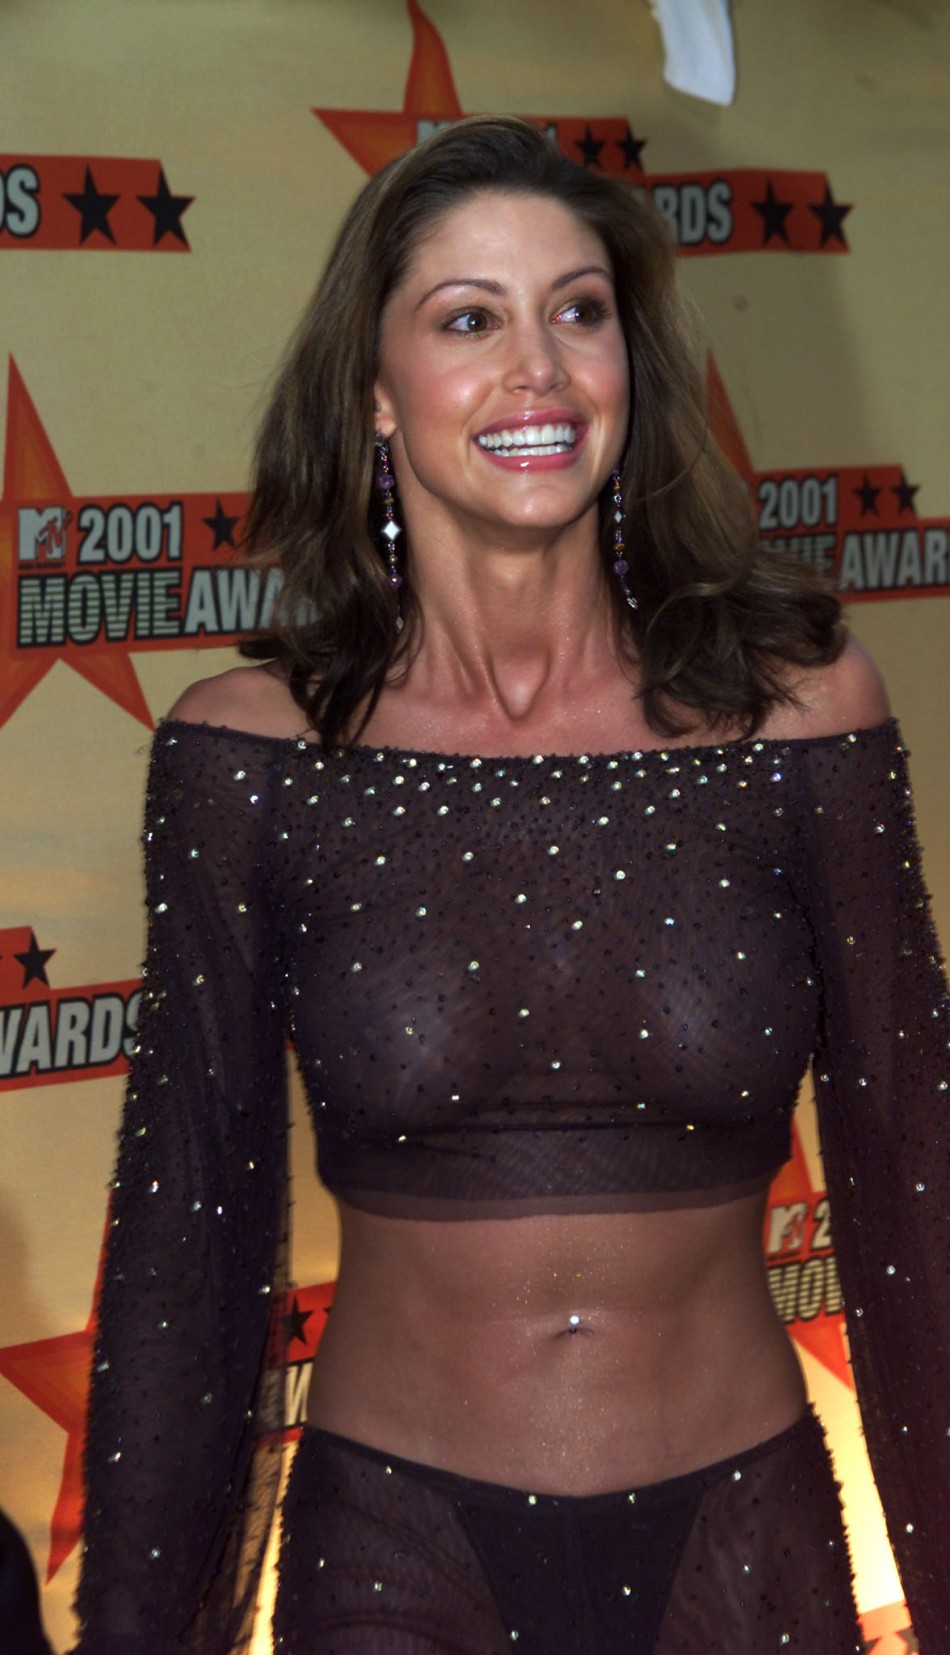 Actress Shannon Elizabeth poses for photographers as she arrives for the 2001 MTV Movie Awards in Los Angeles June 2, 2001.